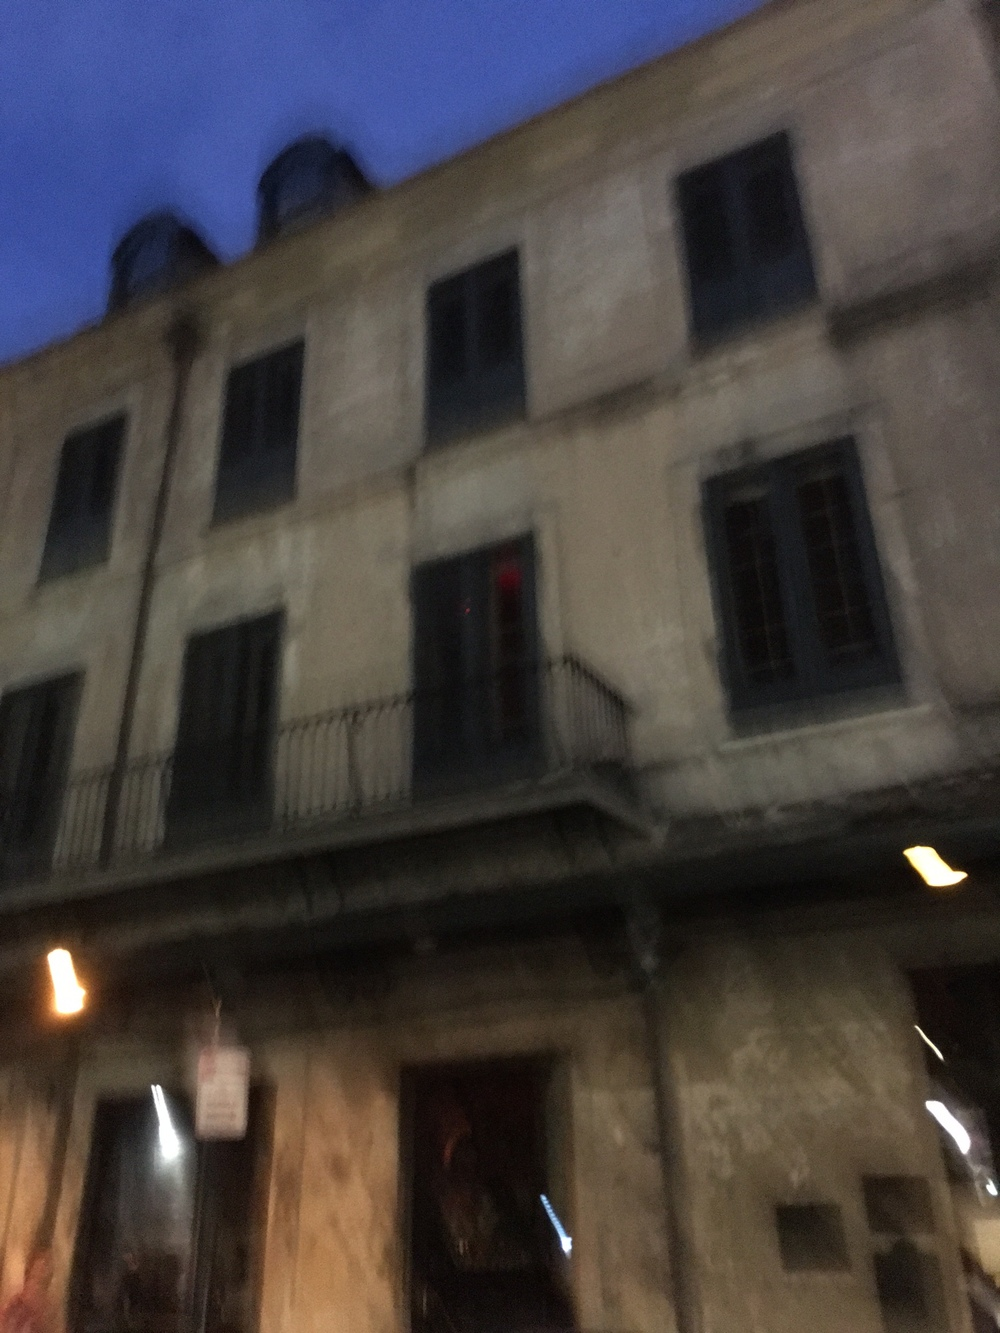 This picture is super blurry, I know, but this is the Napoleon house where they would take half dead soldiers from the civil war and drag their bodies through the streets. A lot of people obviously got tons of diseases and ended up dying in that building.